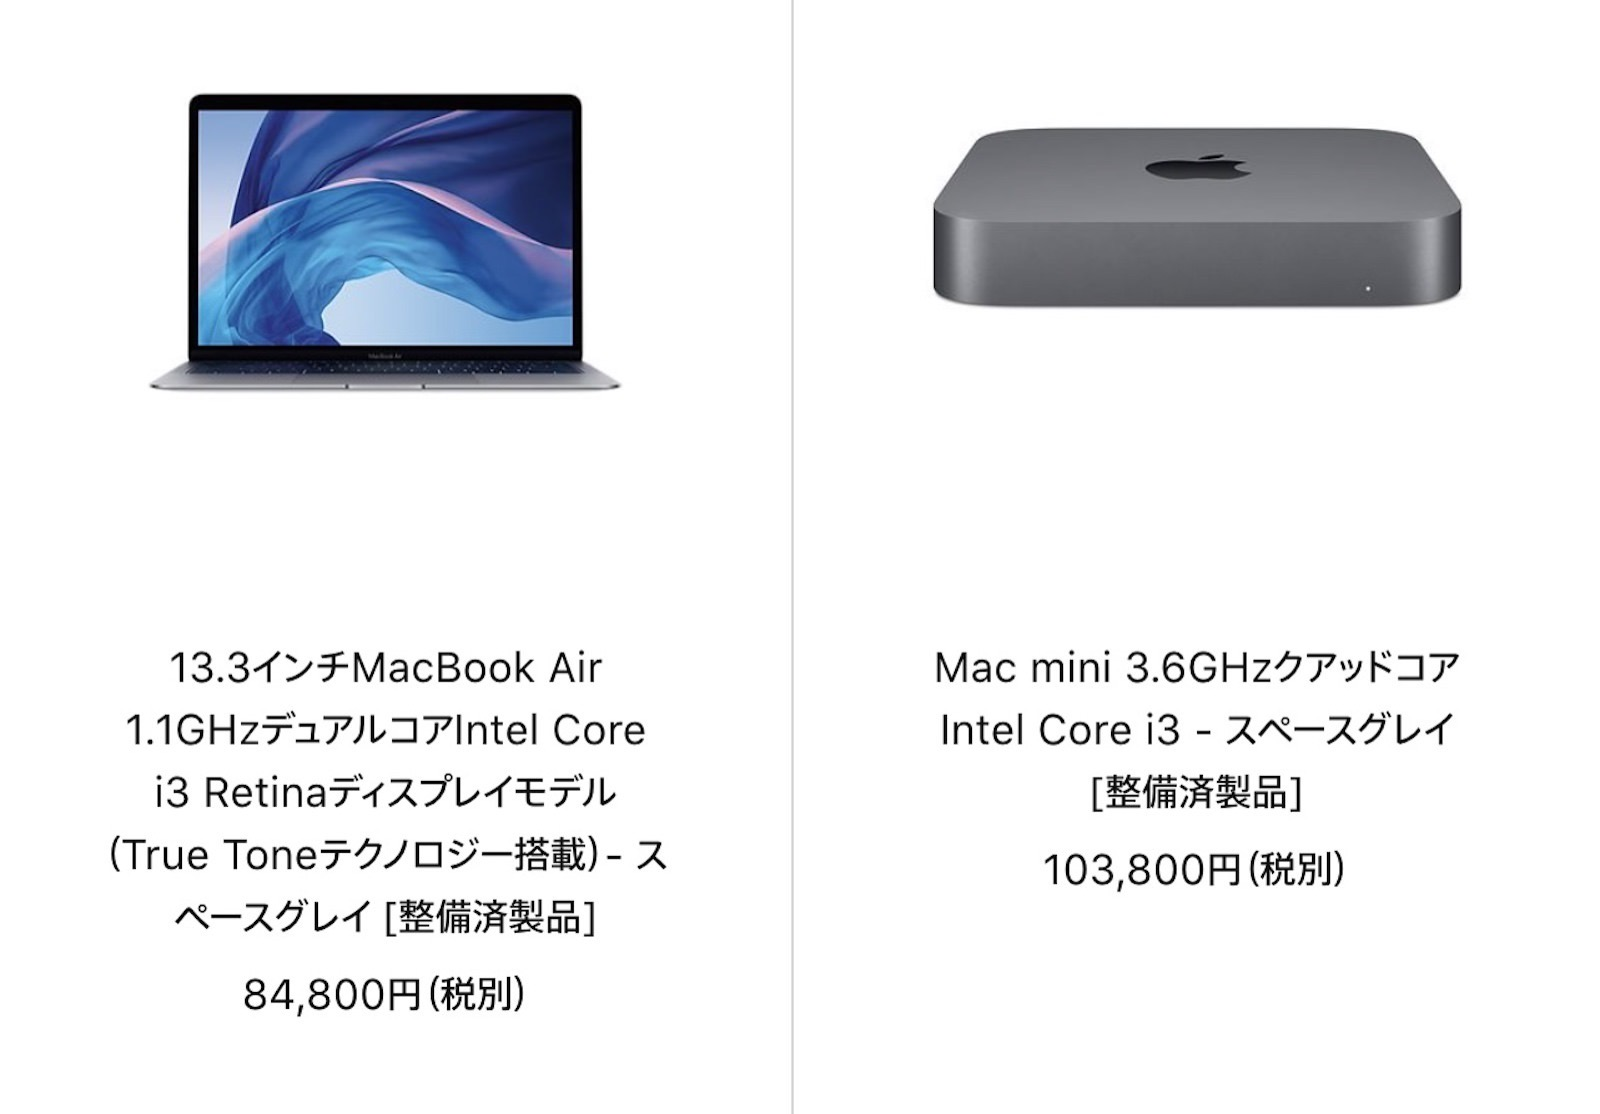 Macbookair and mac mini refurbished 20210218